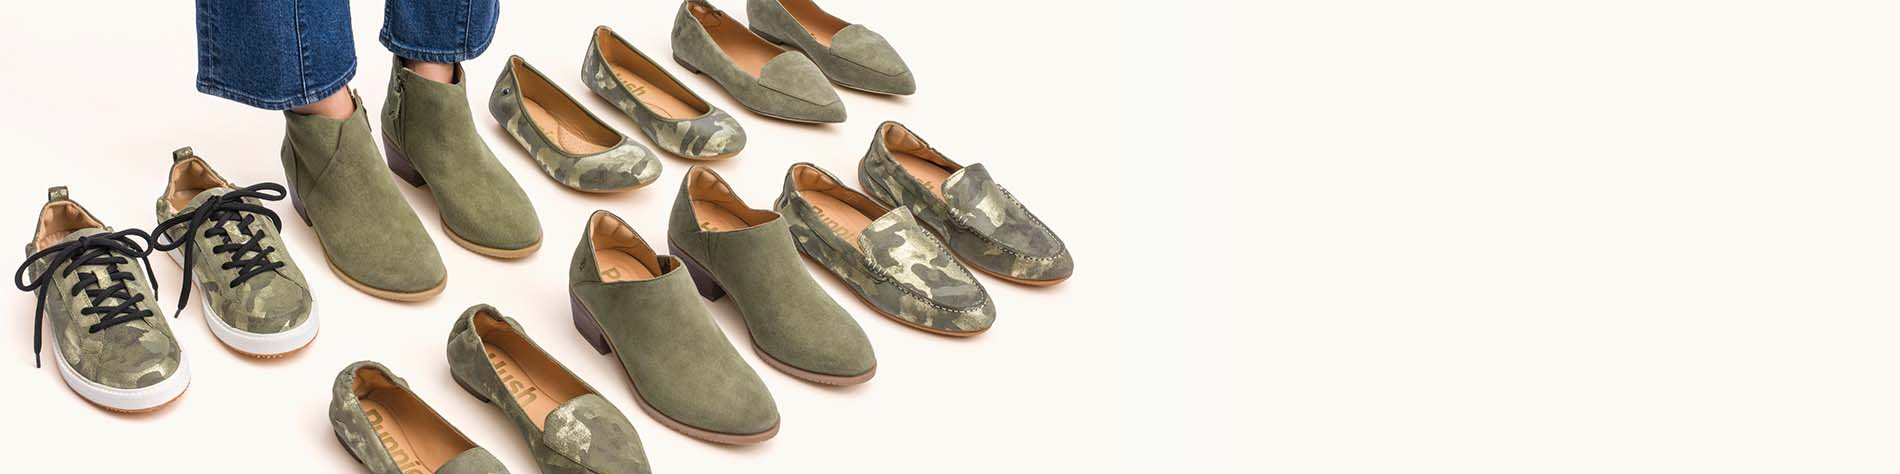 A pair of feet in a pair of olive shoes, hiding in a selction of other olive and camo colored shoes.